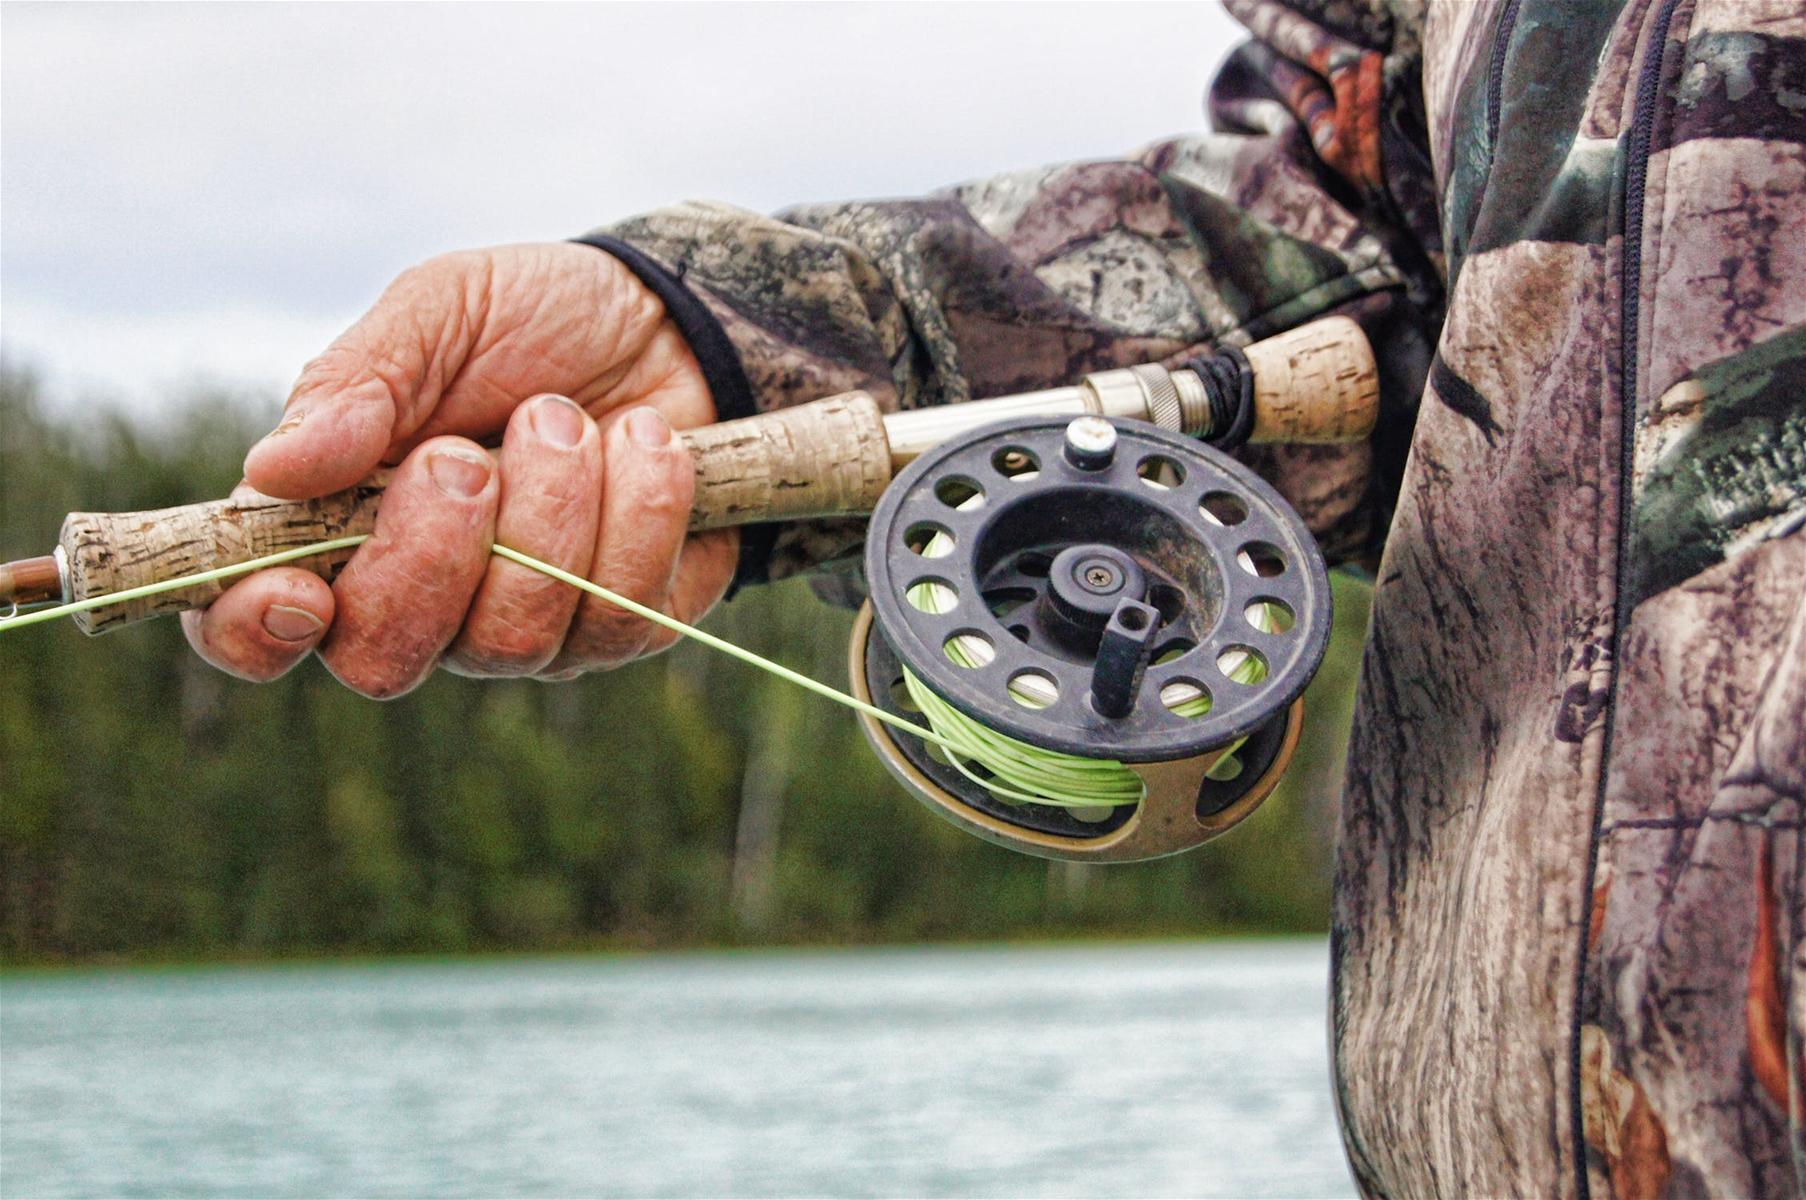 fisherman-fishing-reel-river-39854.jpeg